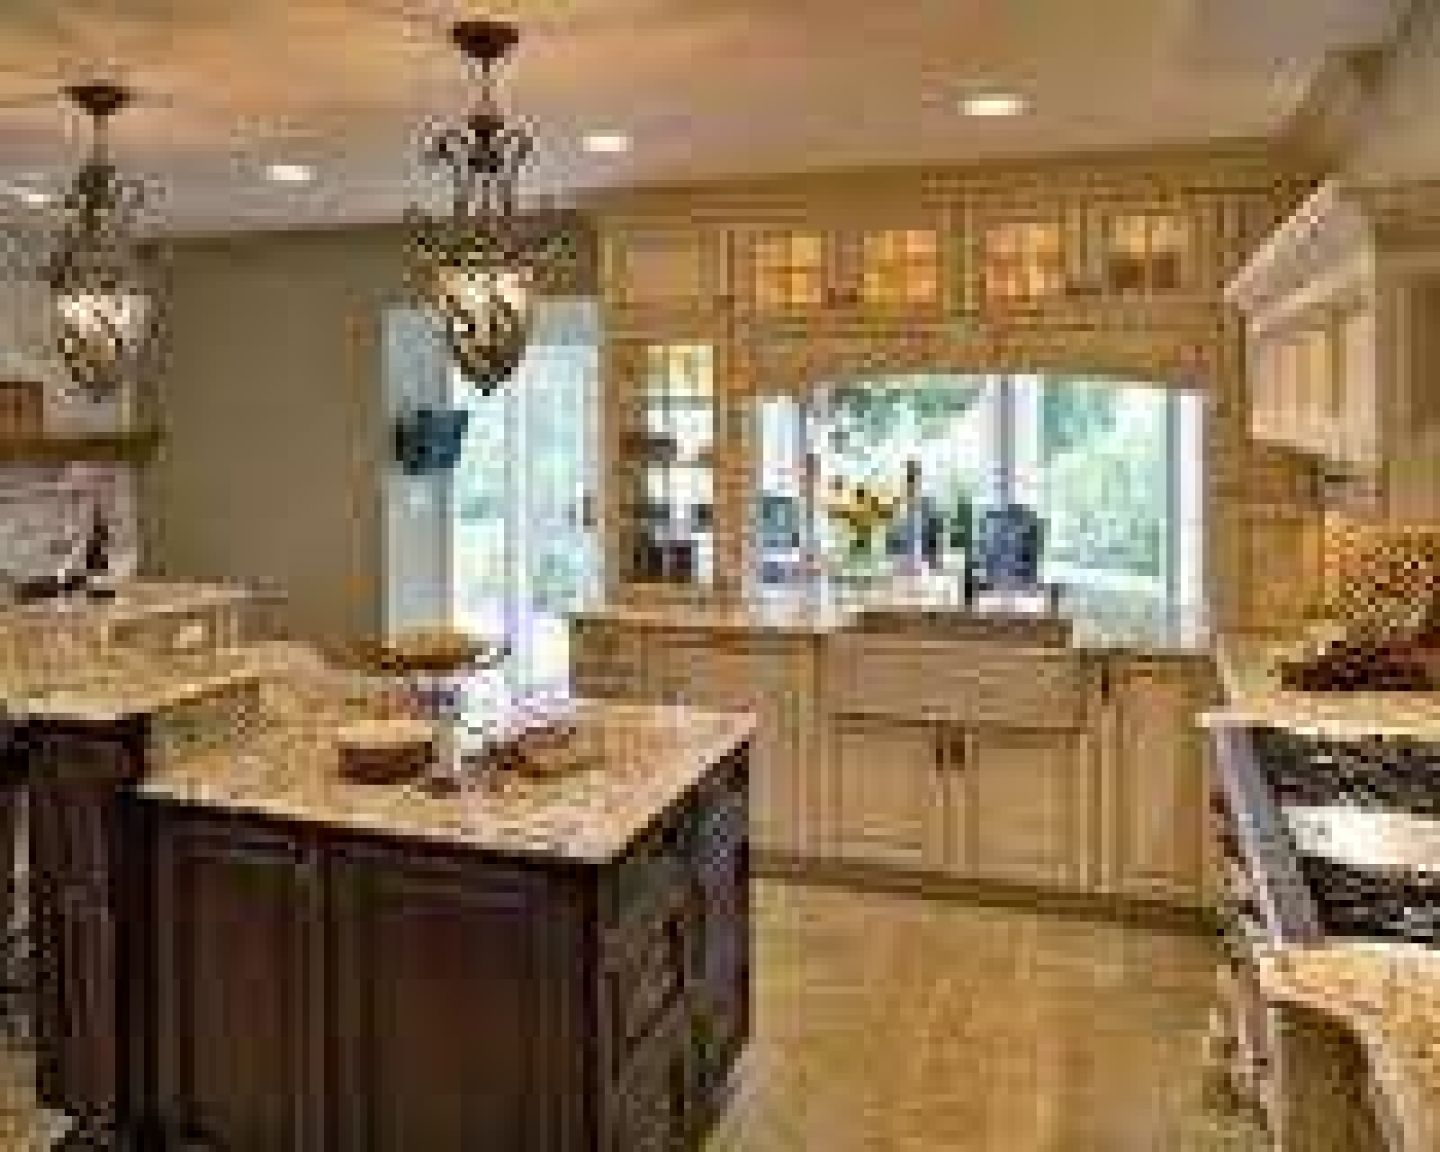 Best Kitchen Gallery: Inspiring Tuscan Style Homes Design House Plans Tuscan Style of Luxury Tuscan Kitchens on rachelxblog.com